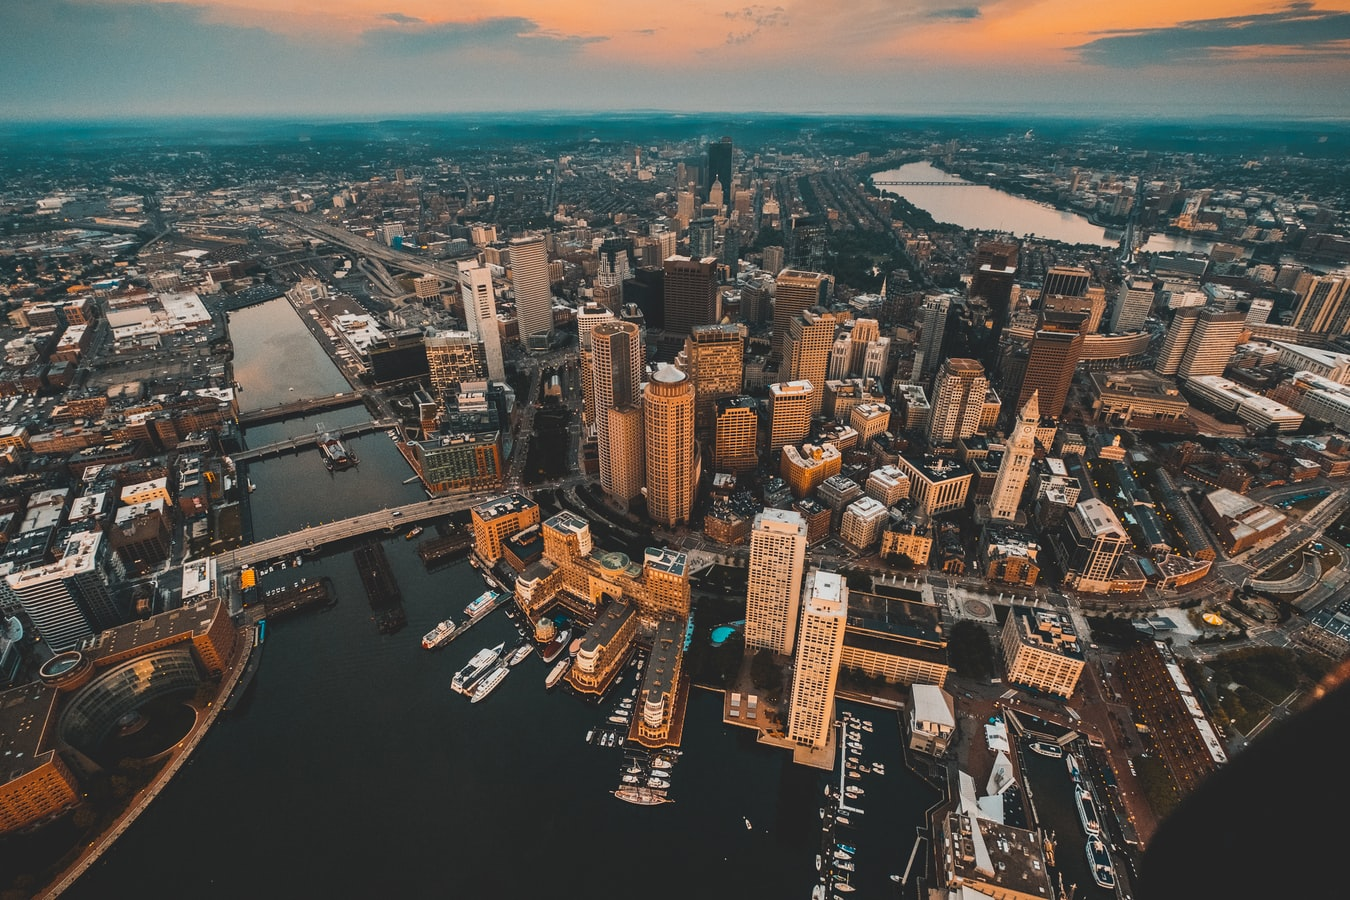 an arial view of Boston, Massachusetts